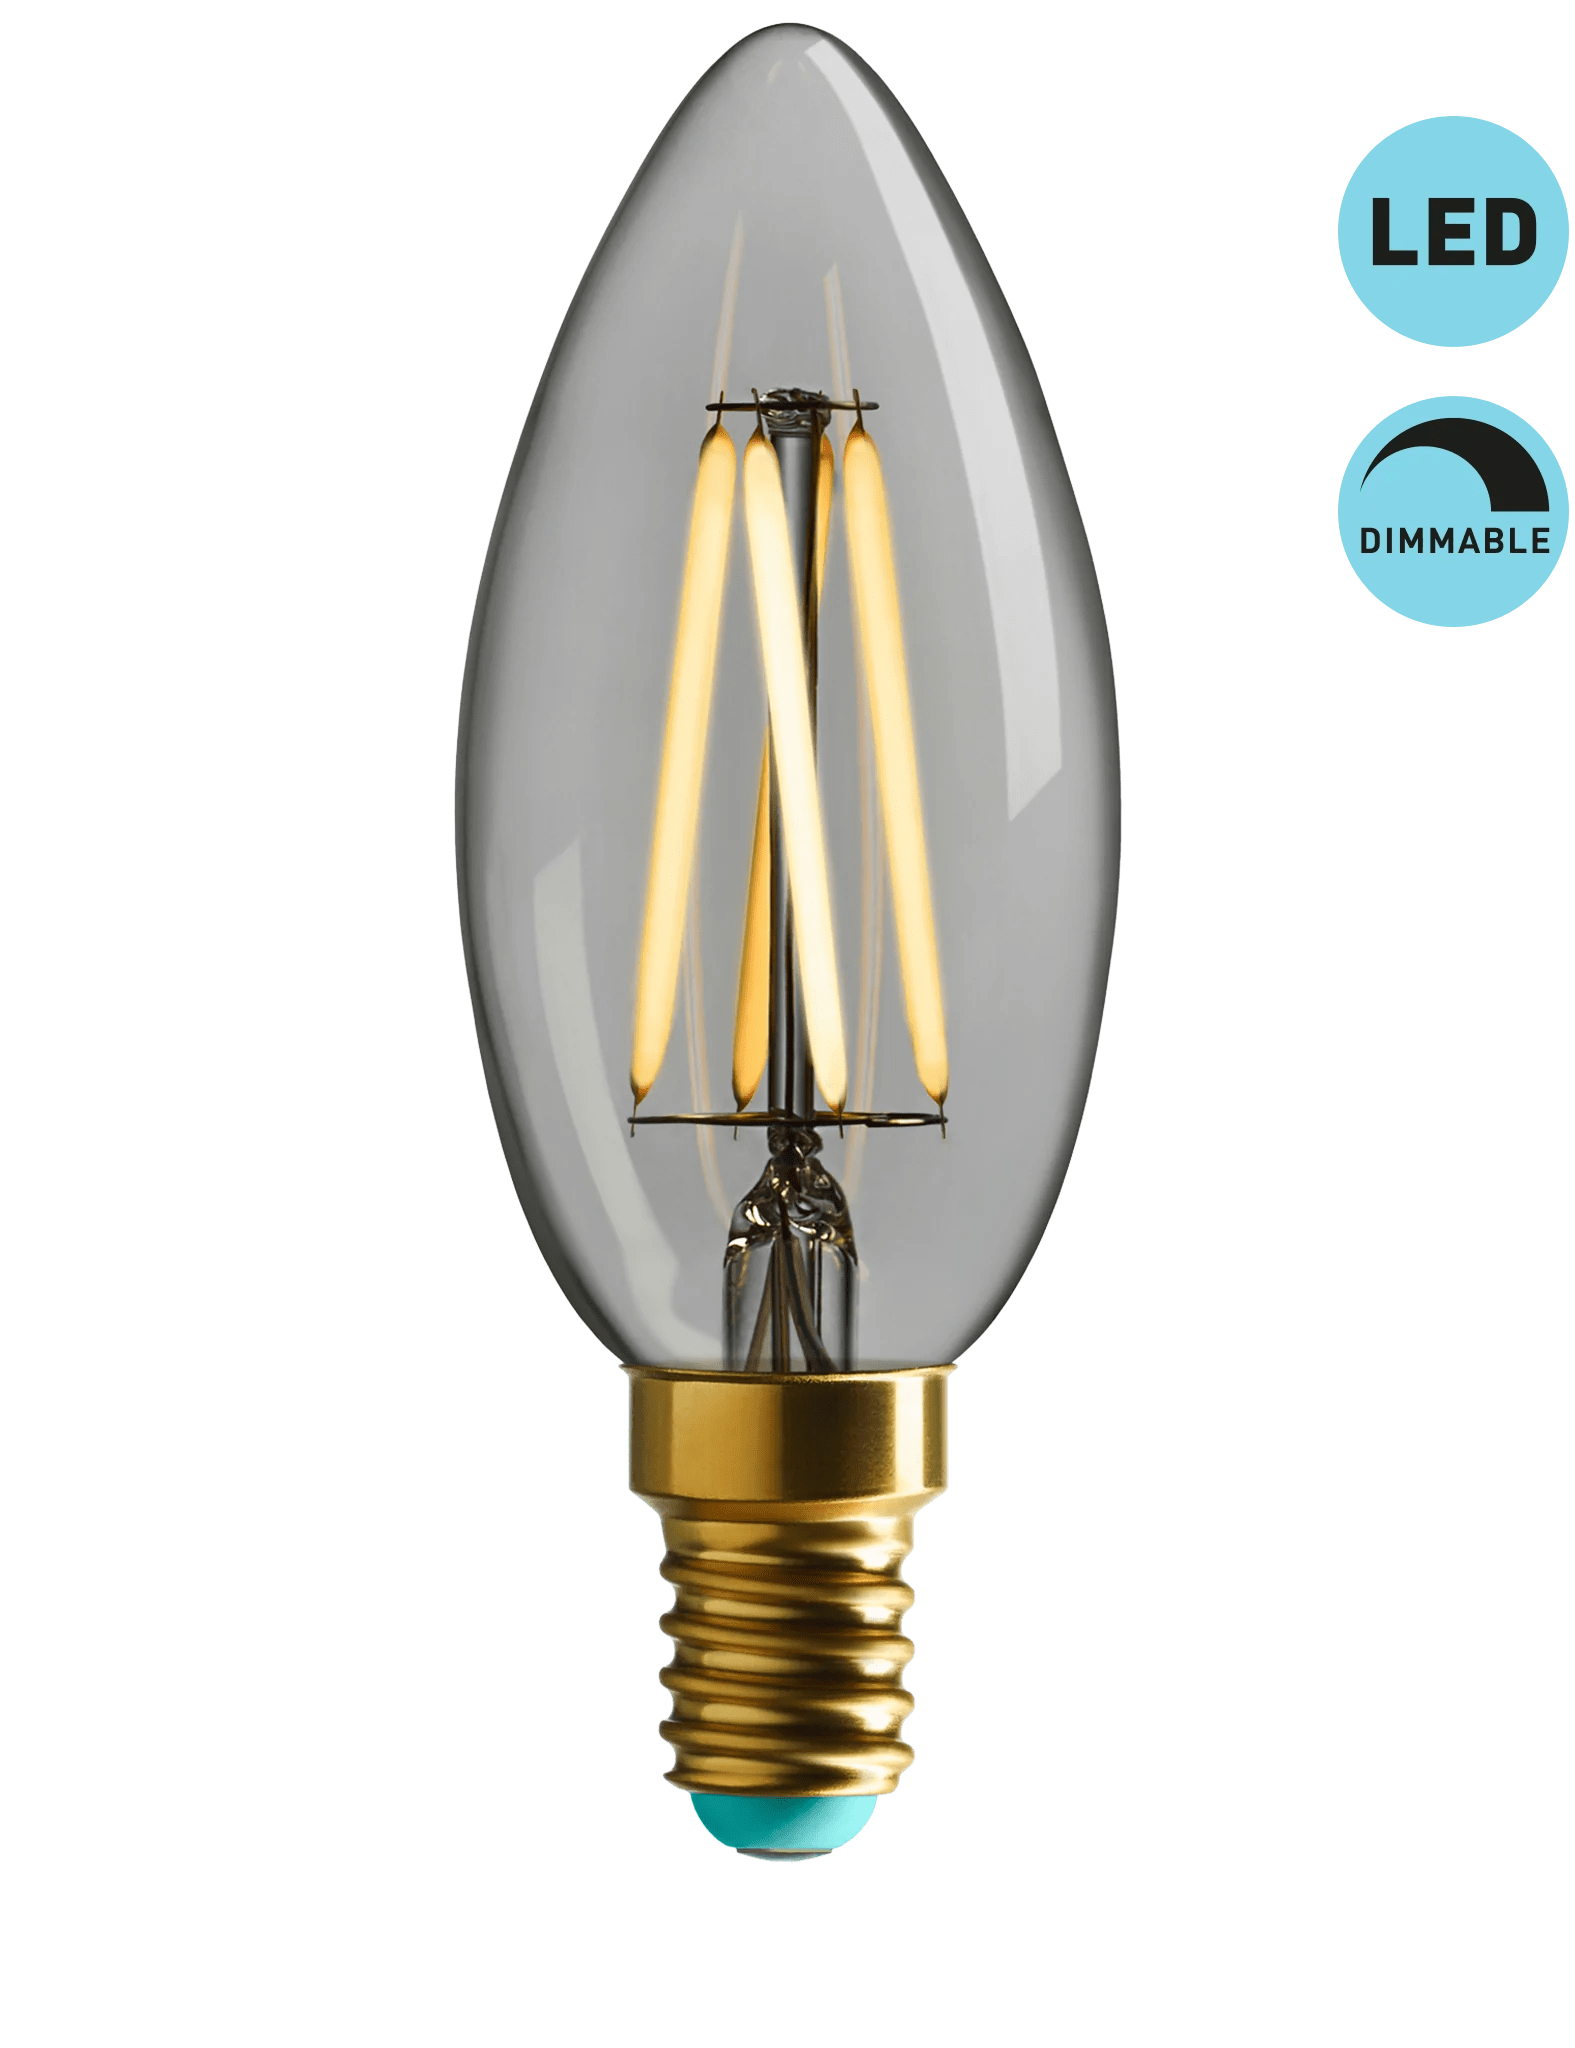 Glowing Light Bulb Png Winnie Dimmable Led Multipack 12 Bulbs Plumen Usd